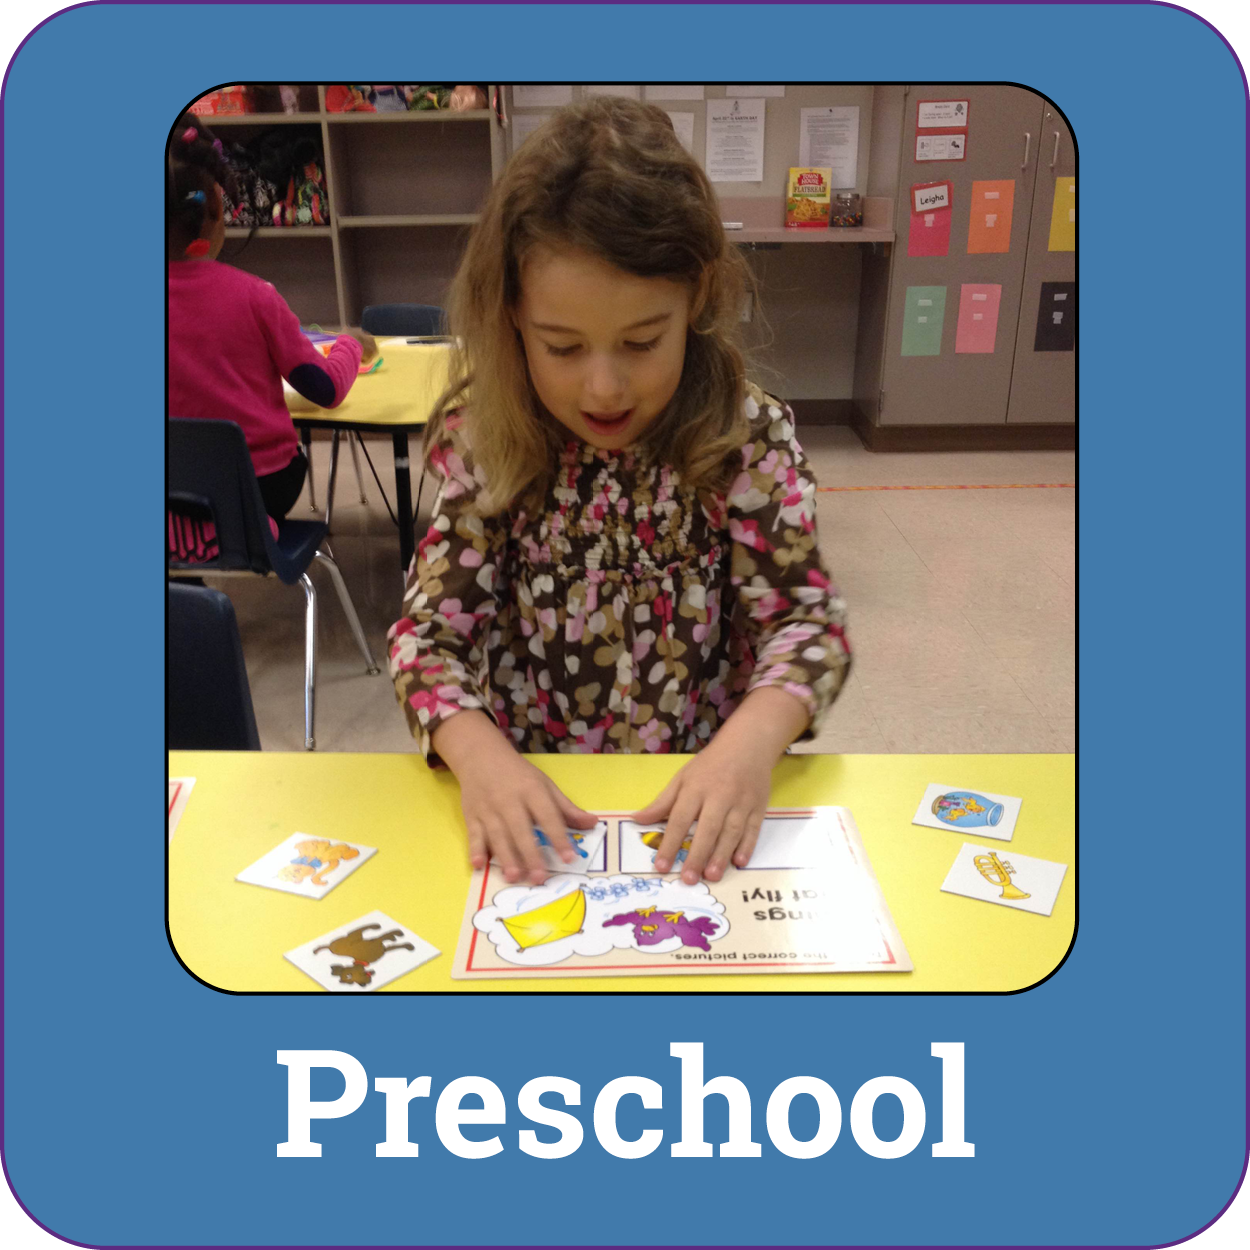 Link to Preschool Information